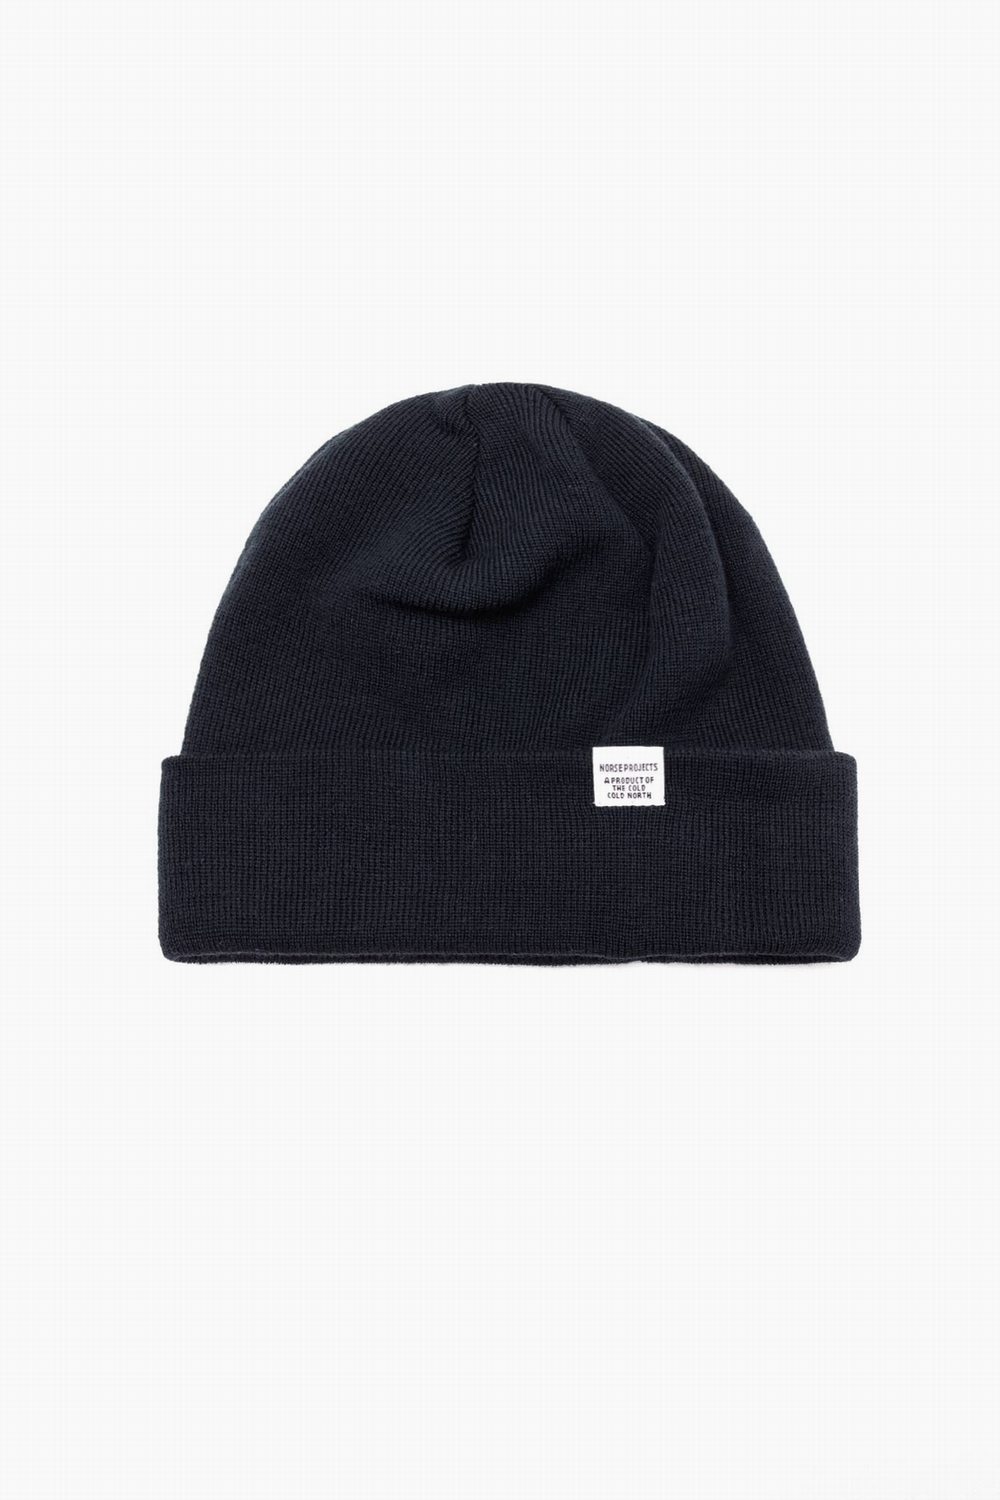 d861f4bcb17 NORSE PROJECTS - NORSE TOP BEANIE